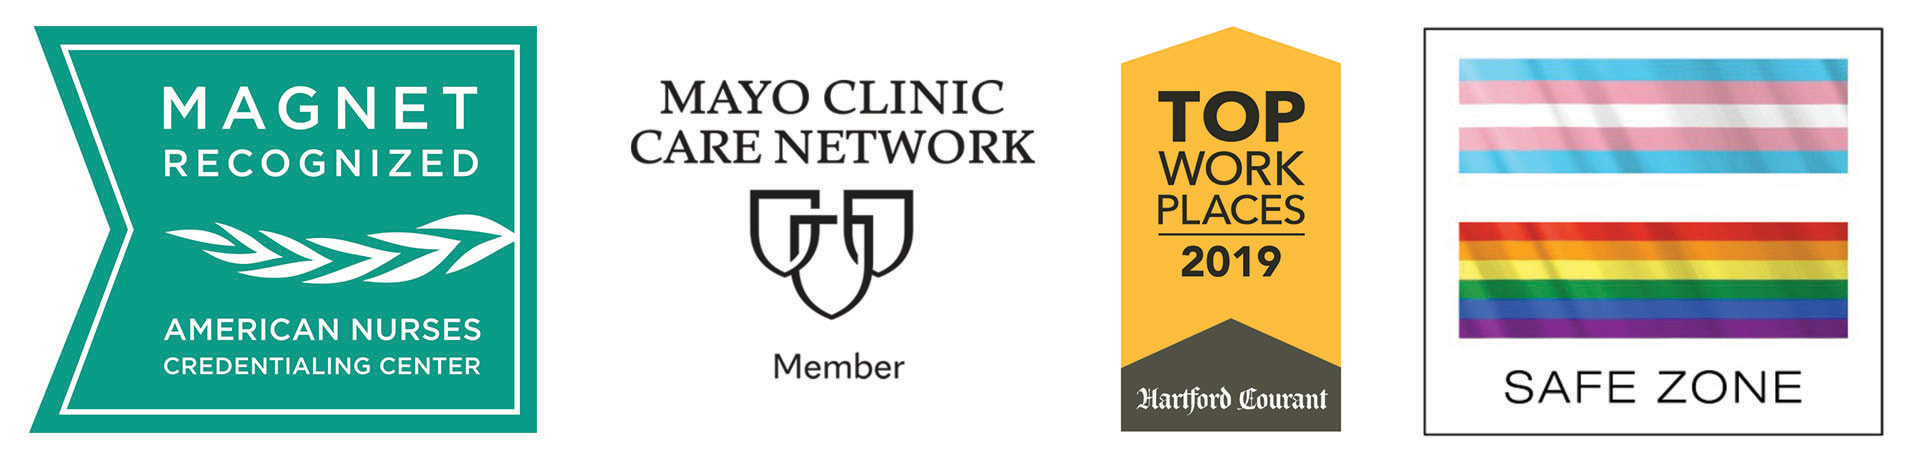 Magnet, Mayo Clinic Care Network, Top Workplaces, and Safe Zone Logos